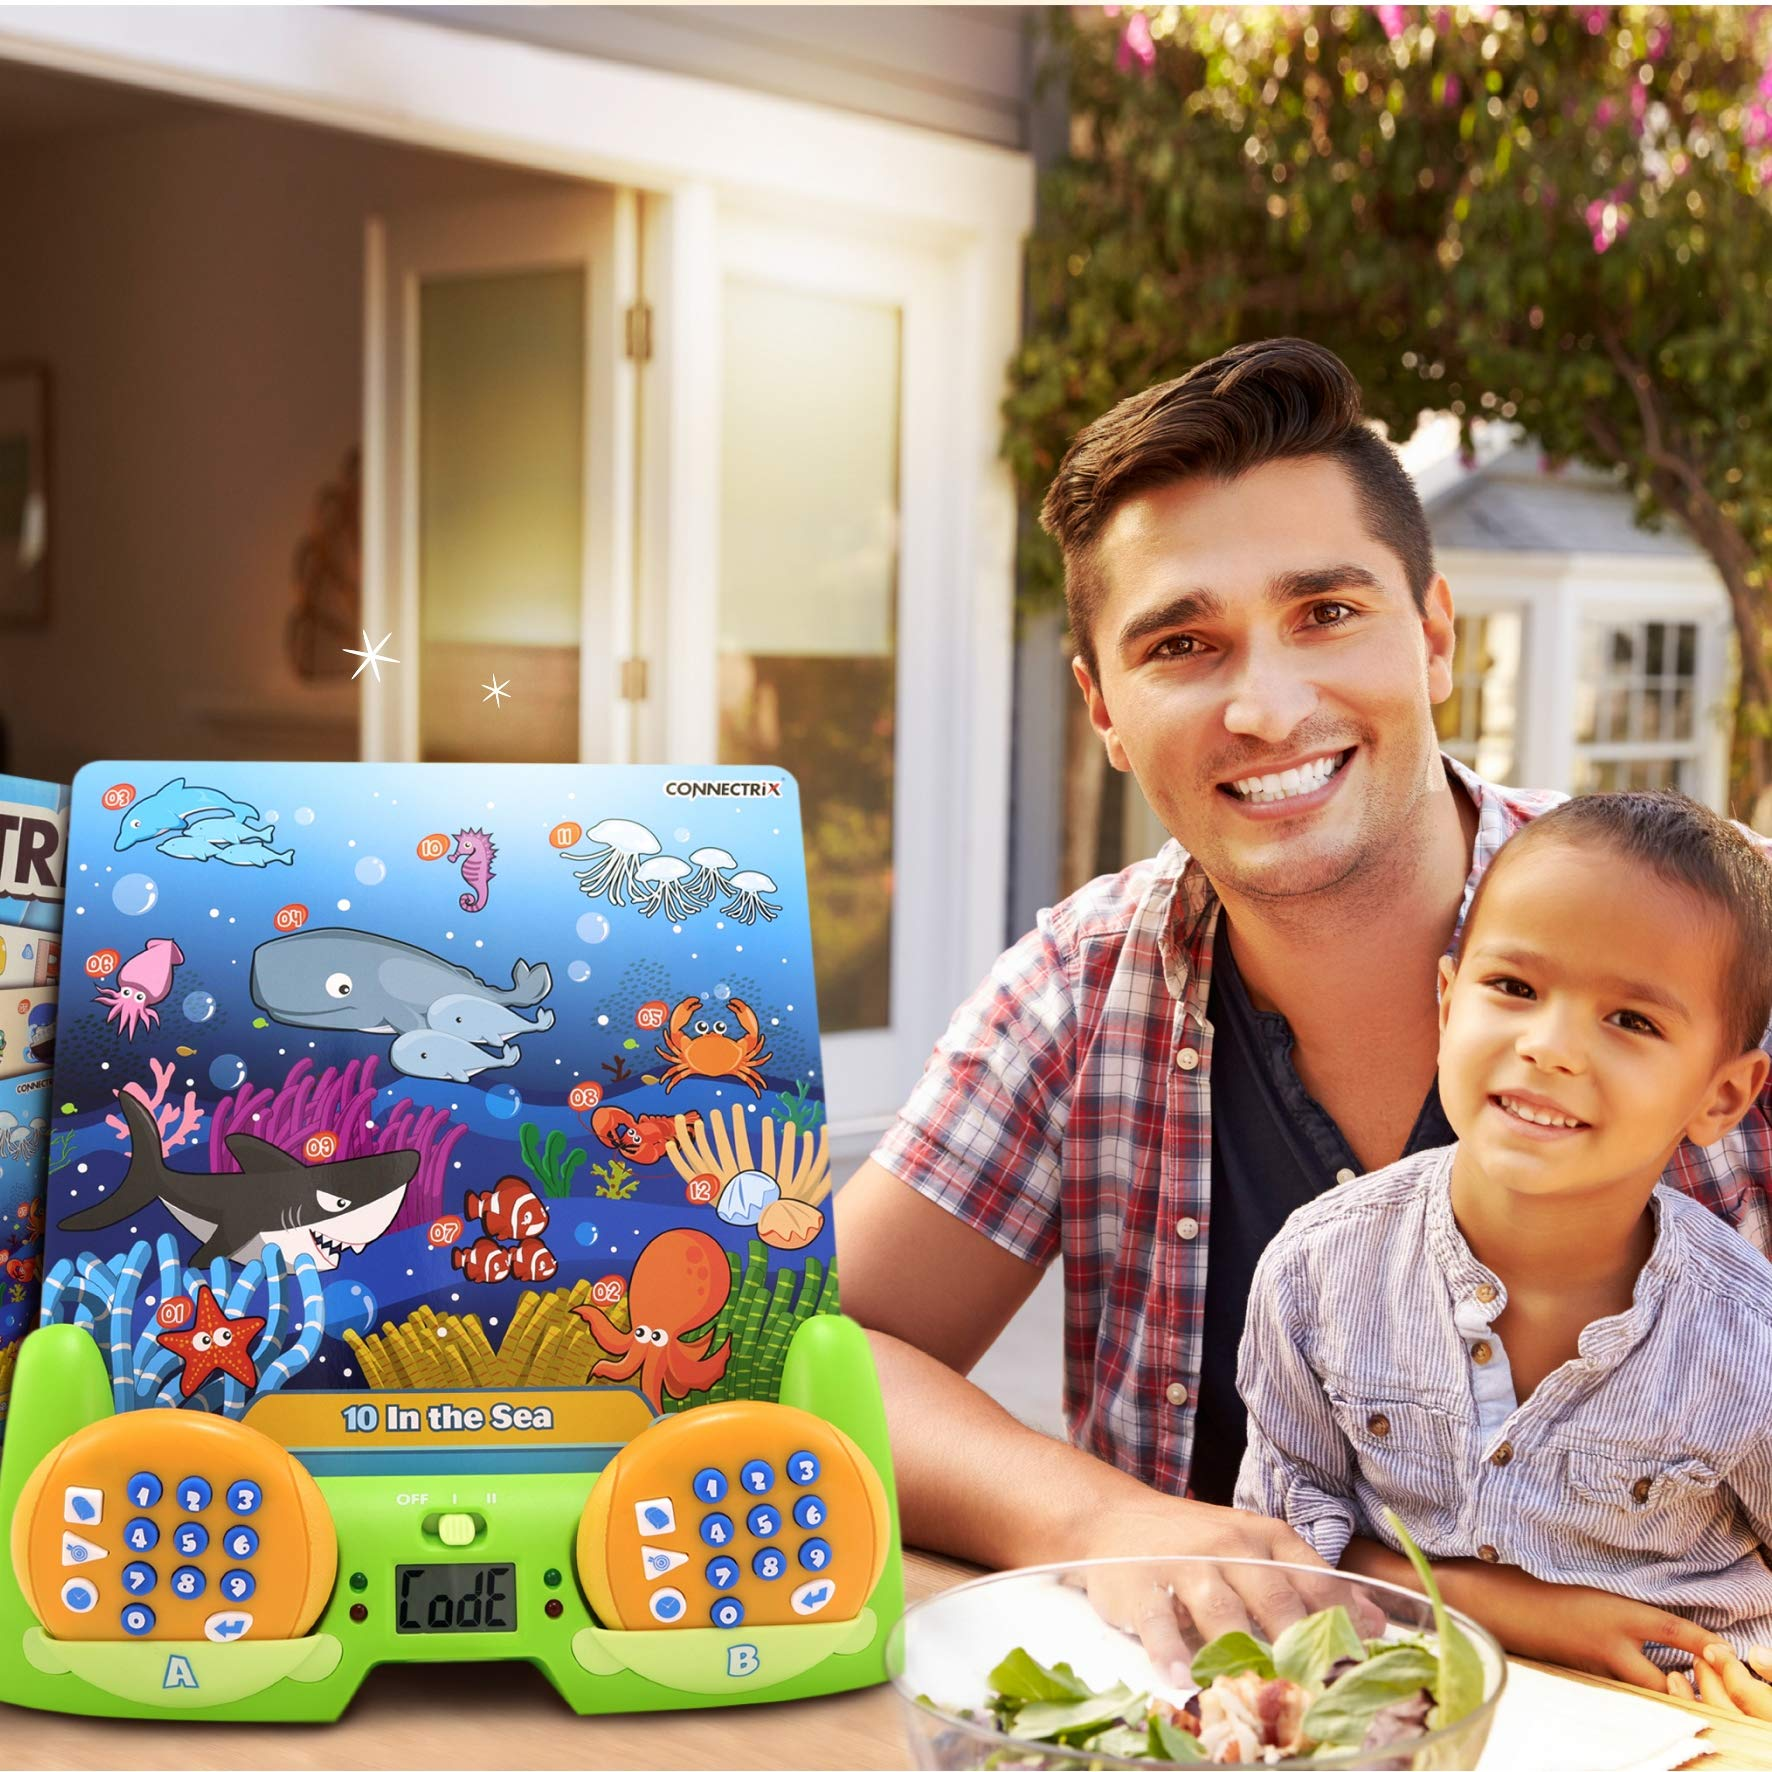 BEST LEARNING Connectrix Junior - Memory Matching Game for Kids - Original Interactive Educational Match Cards Toddler Games for 3-8 Year Olds - Classic 2-Player Concentration Card Toys for Toddlers by BEST LEARNING (Image #8)